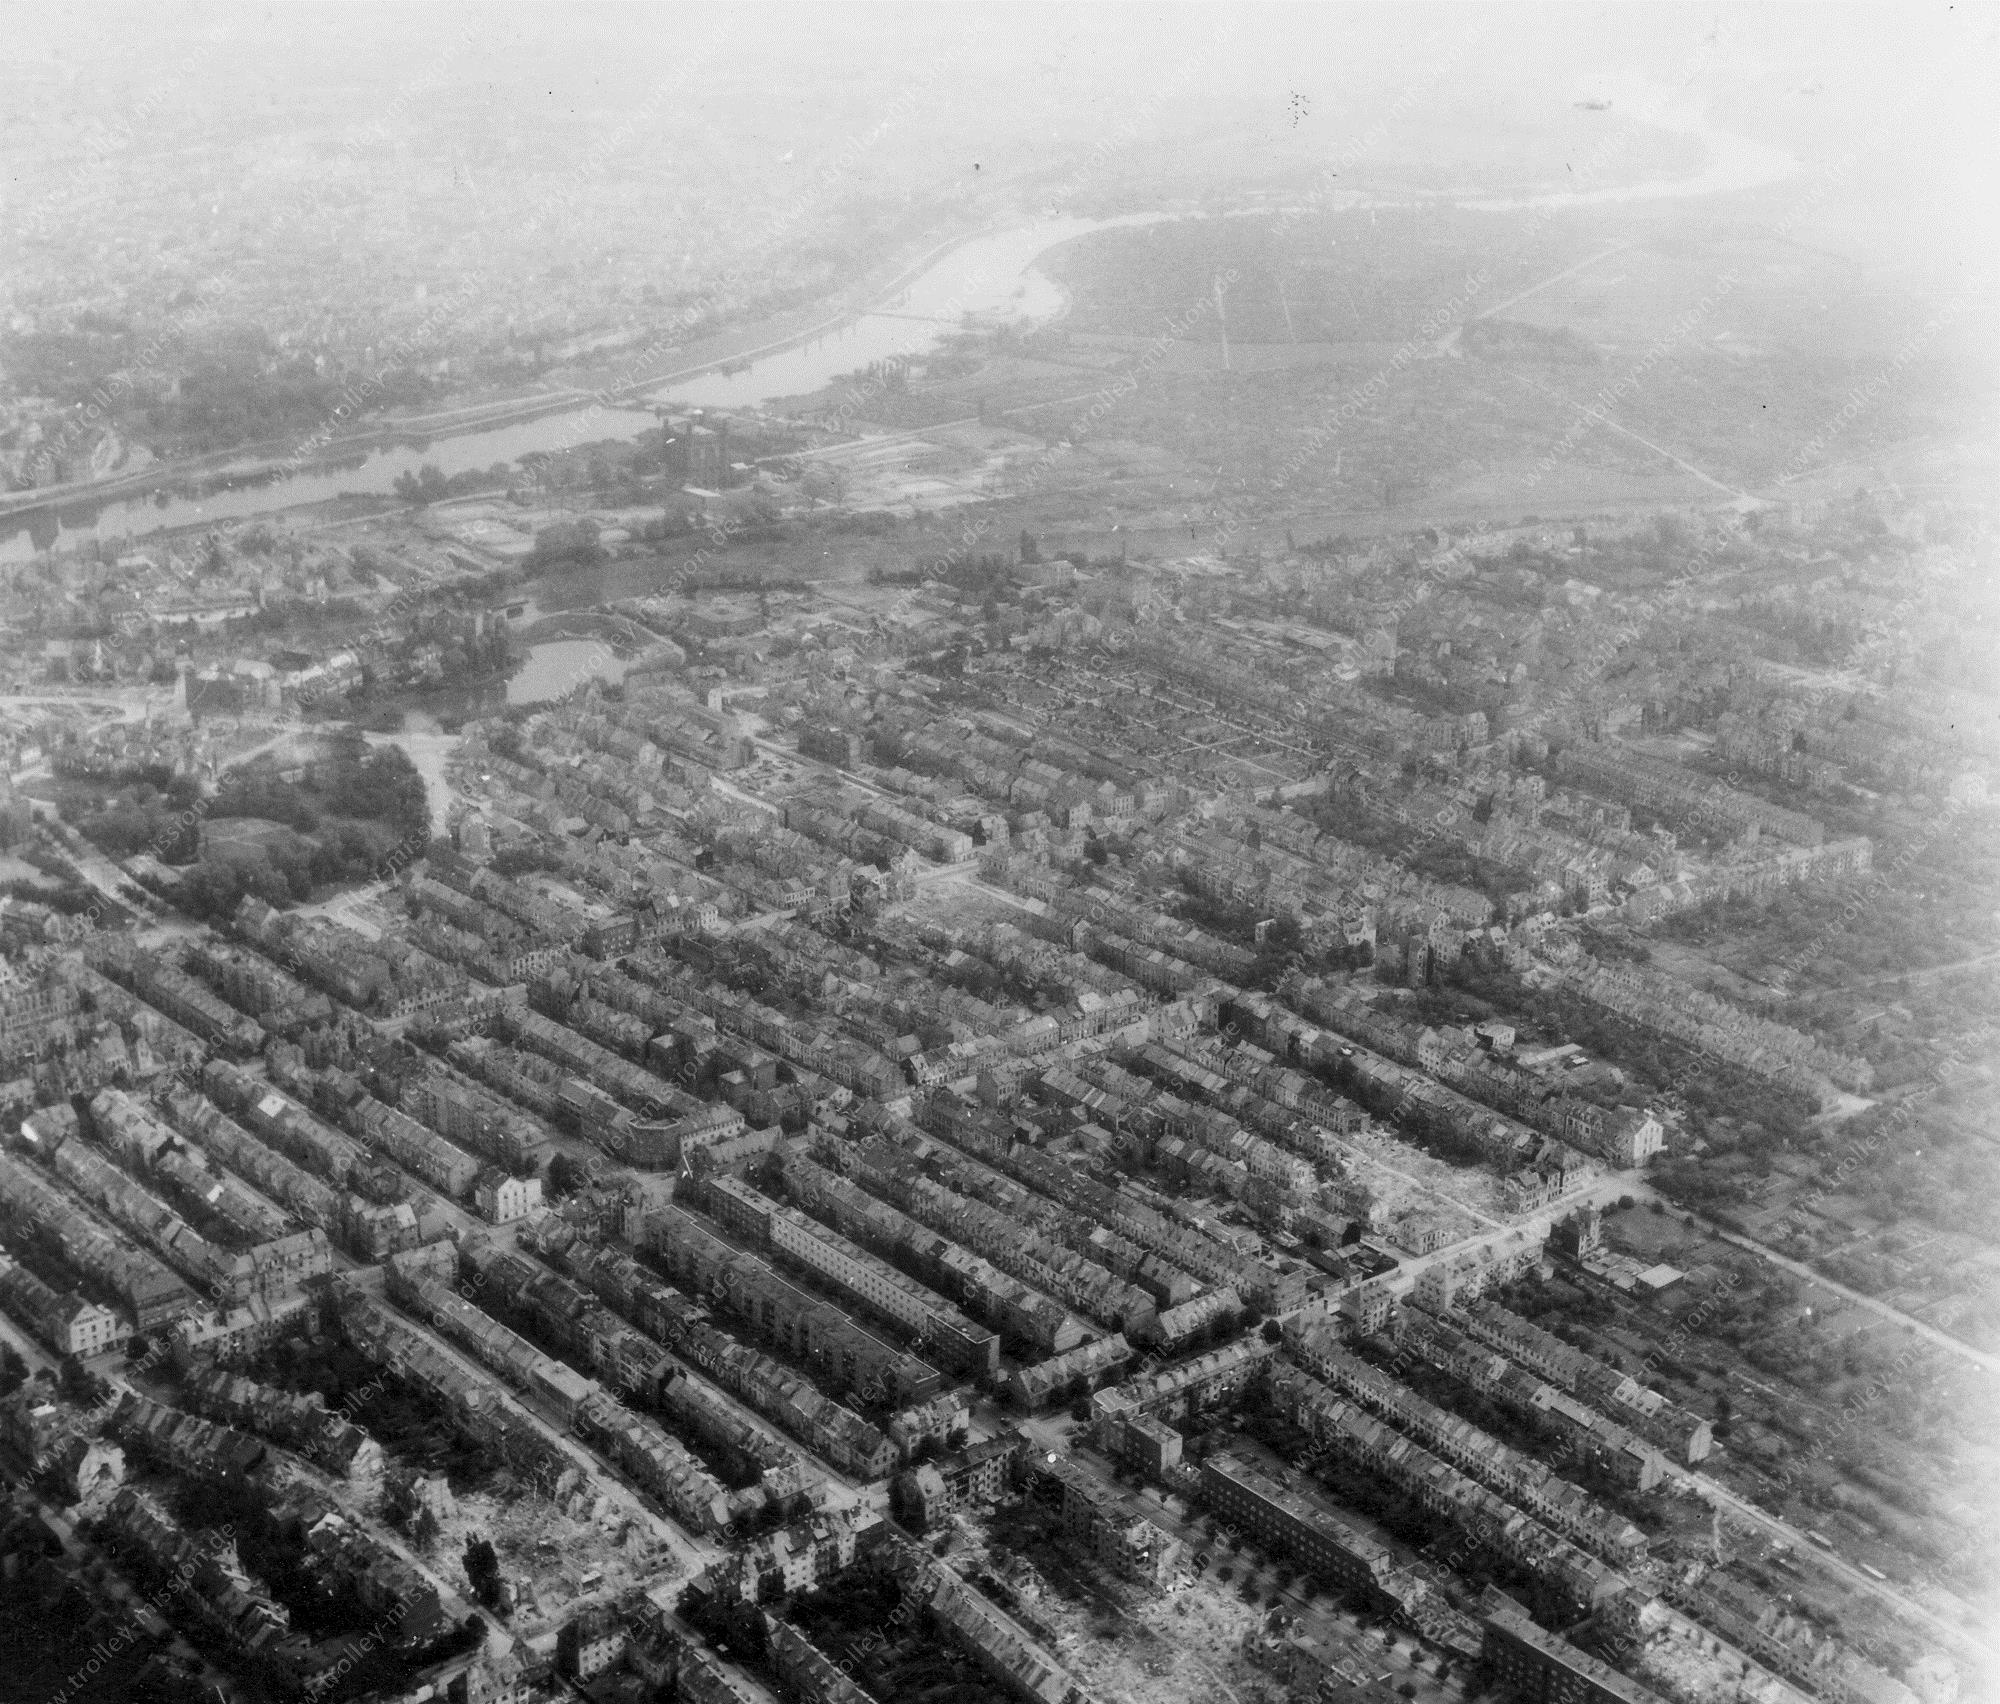 Bremen from above: Aerial view after Allied air raids in World War II